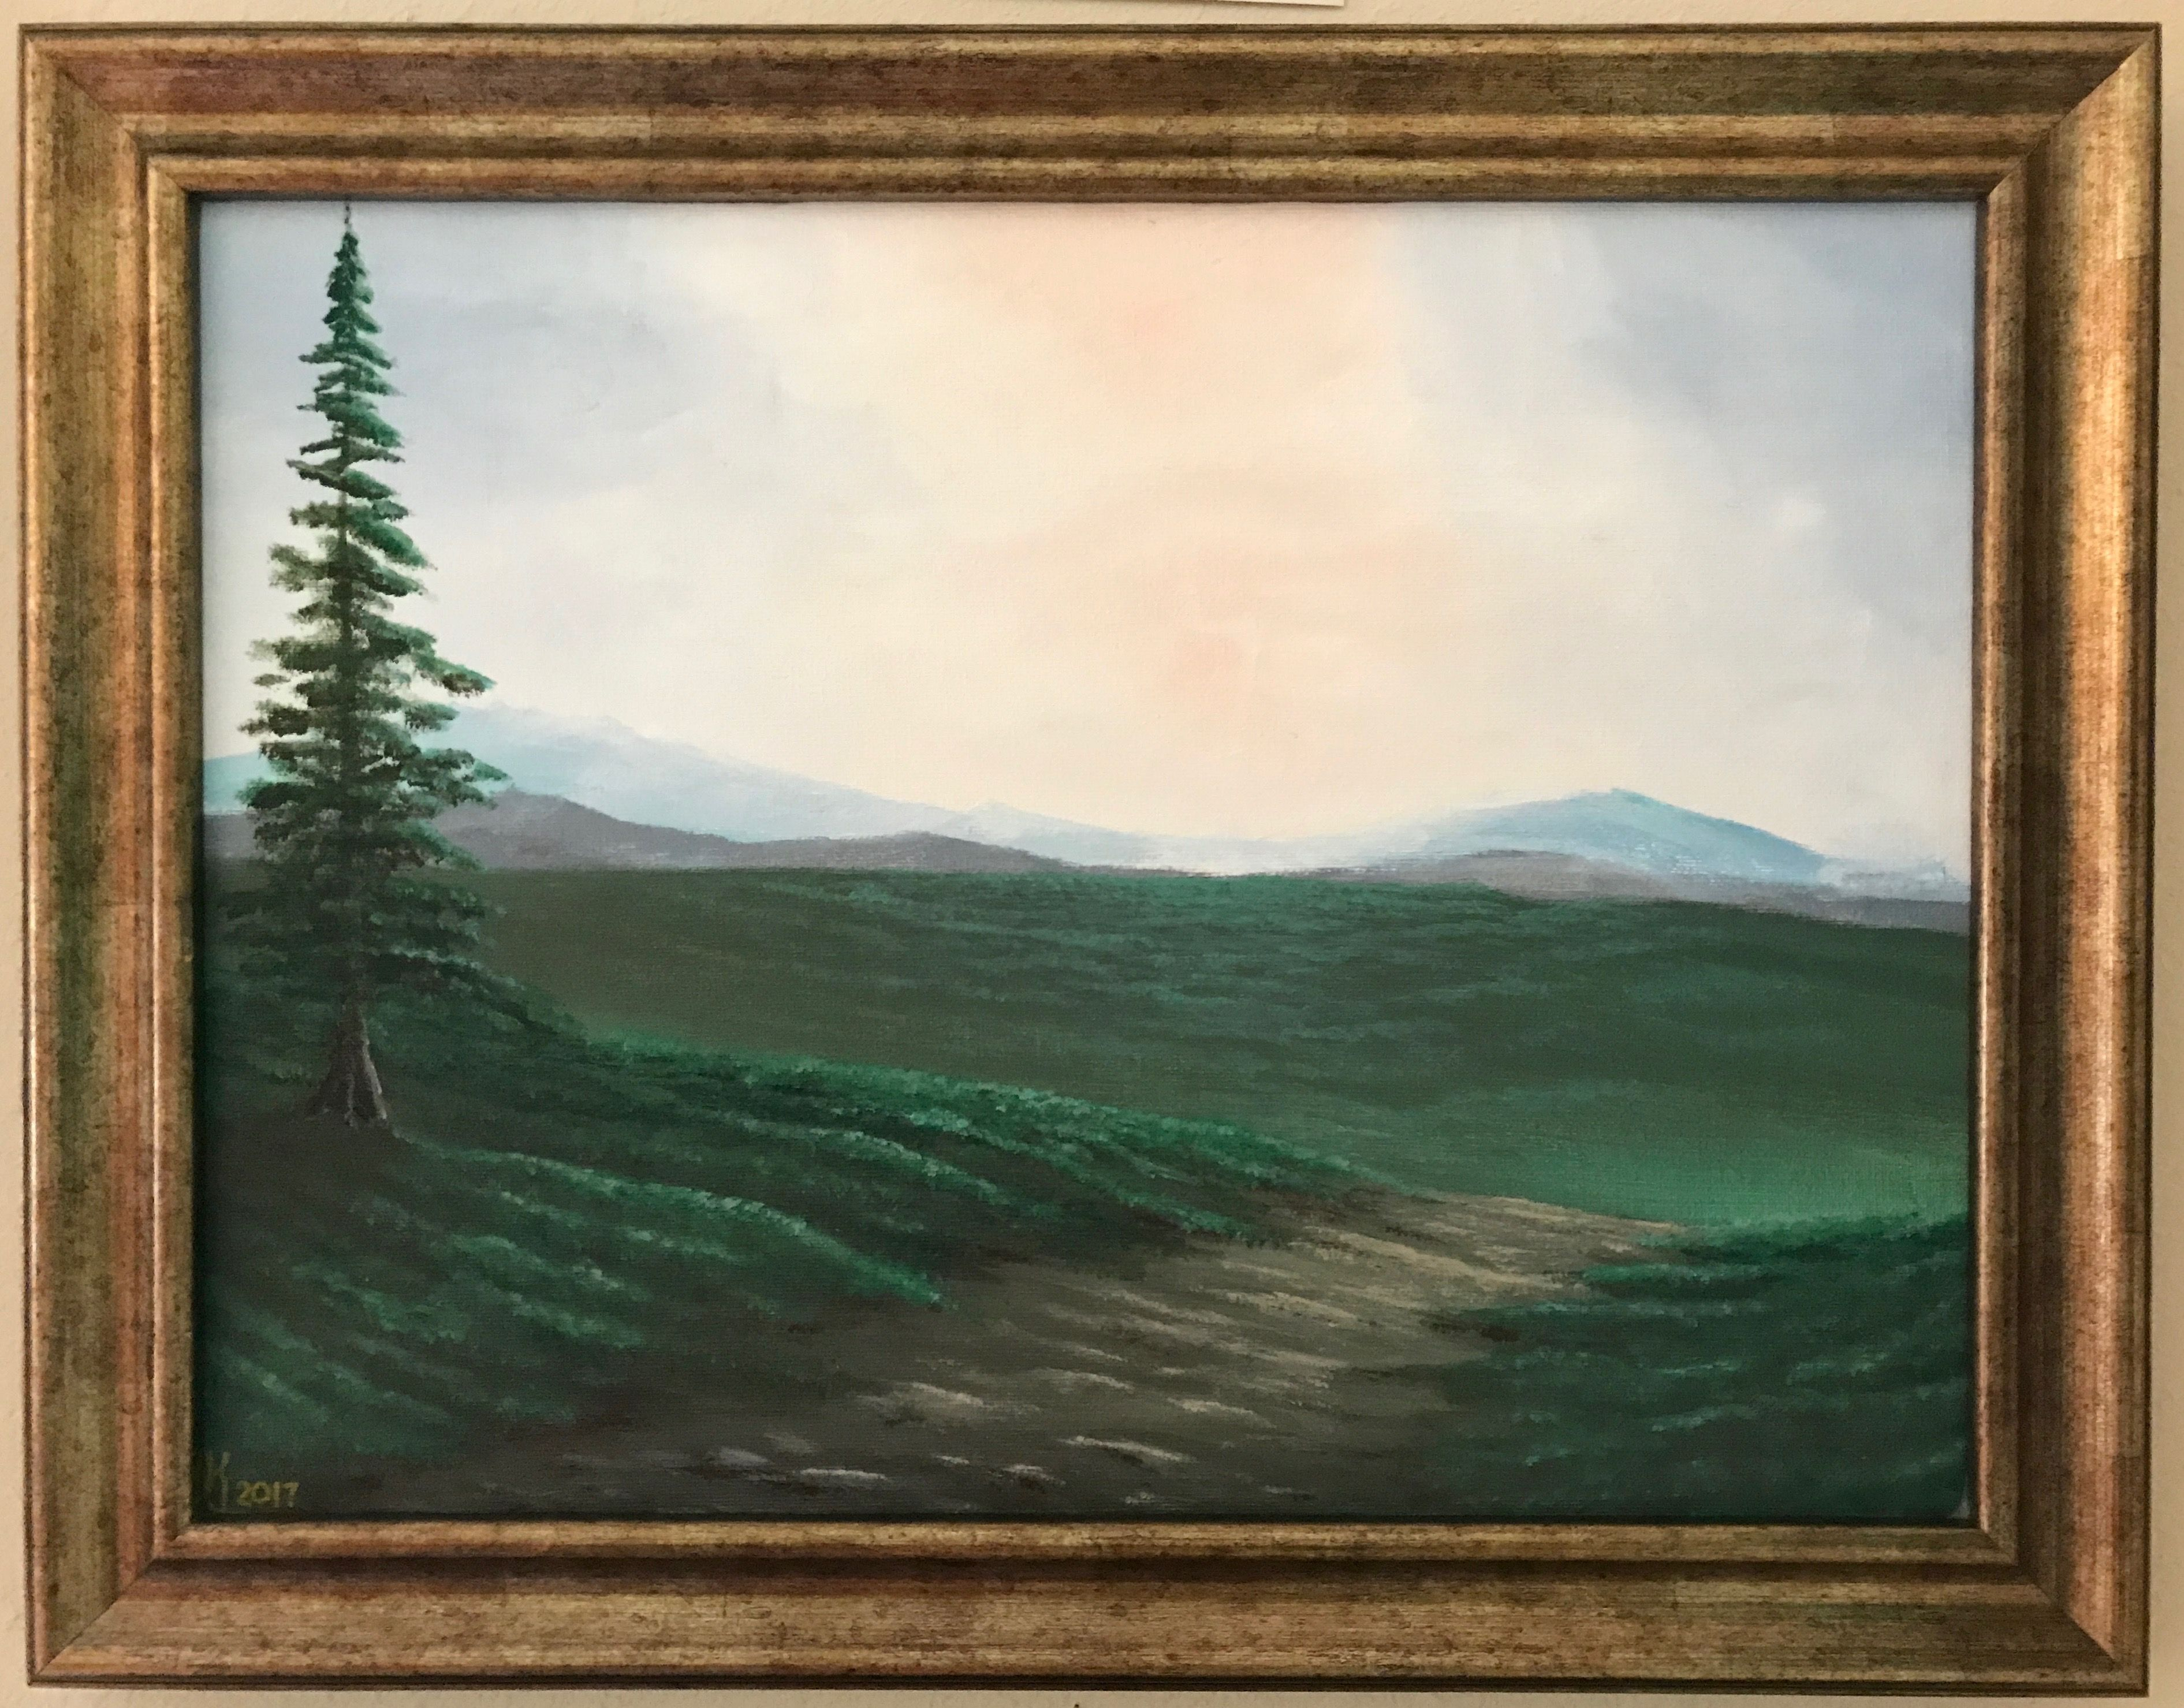 August Pine Original Minimalistic Style Landscape Painting By Kj Burk This Piece Is C Abstract Landscape Painting Landscape Paintings Art World